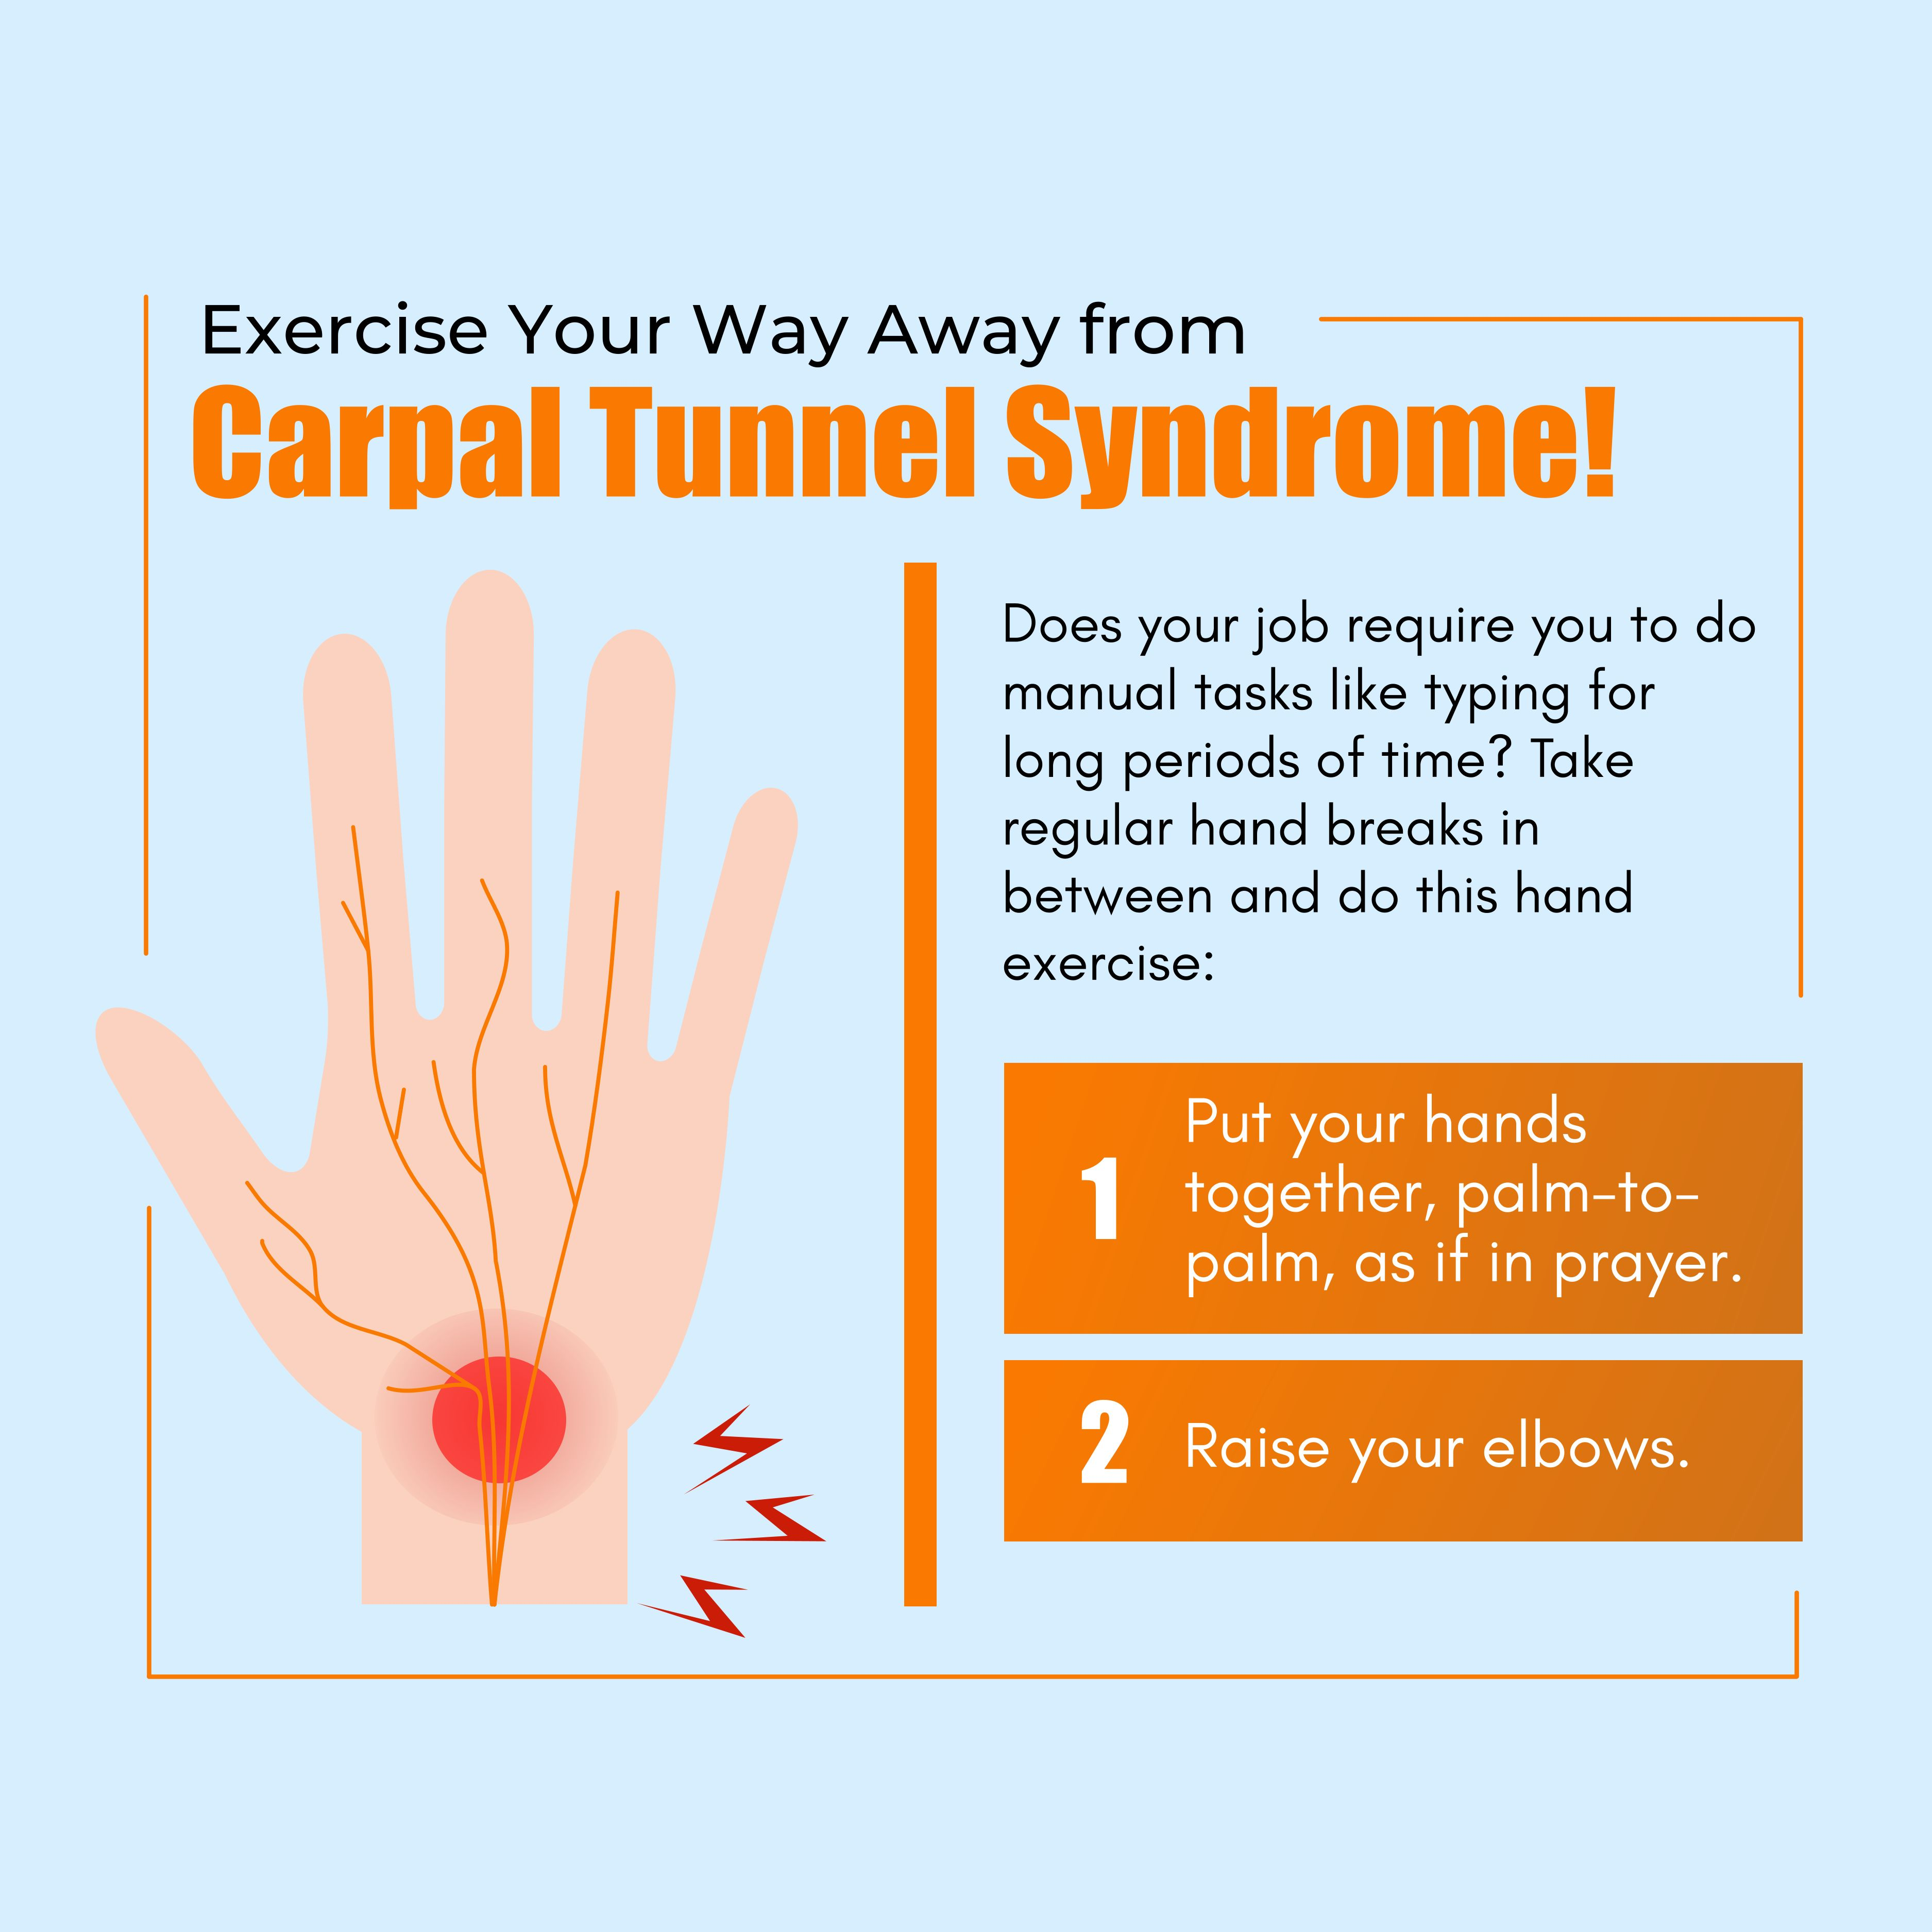 Exercise Your Way Away From Carpal Tunnel Syndrome